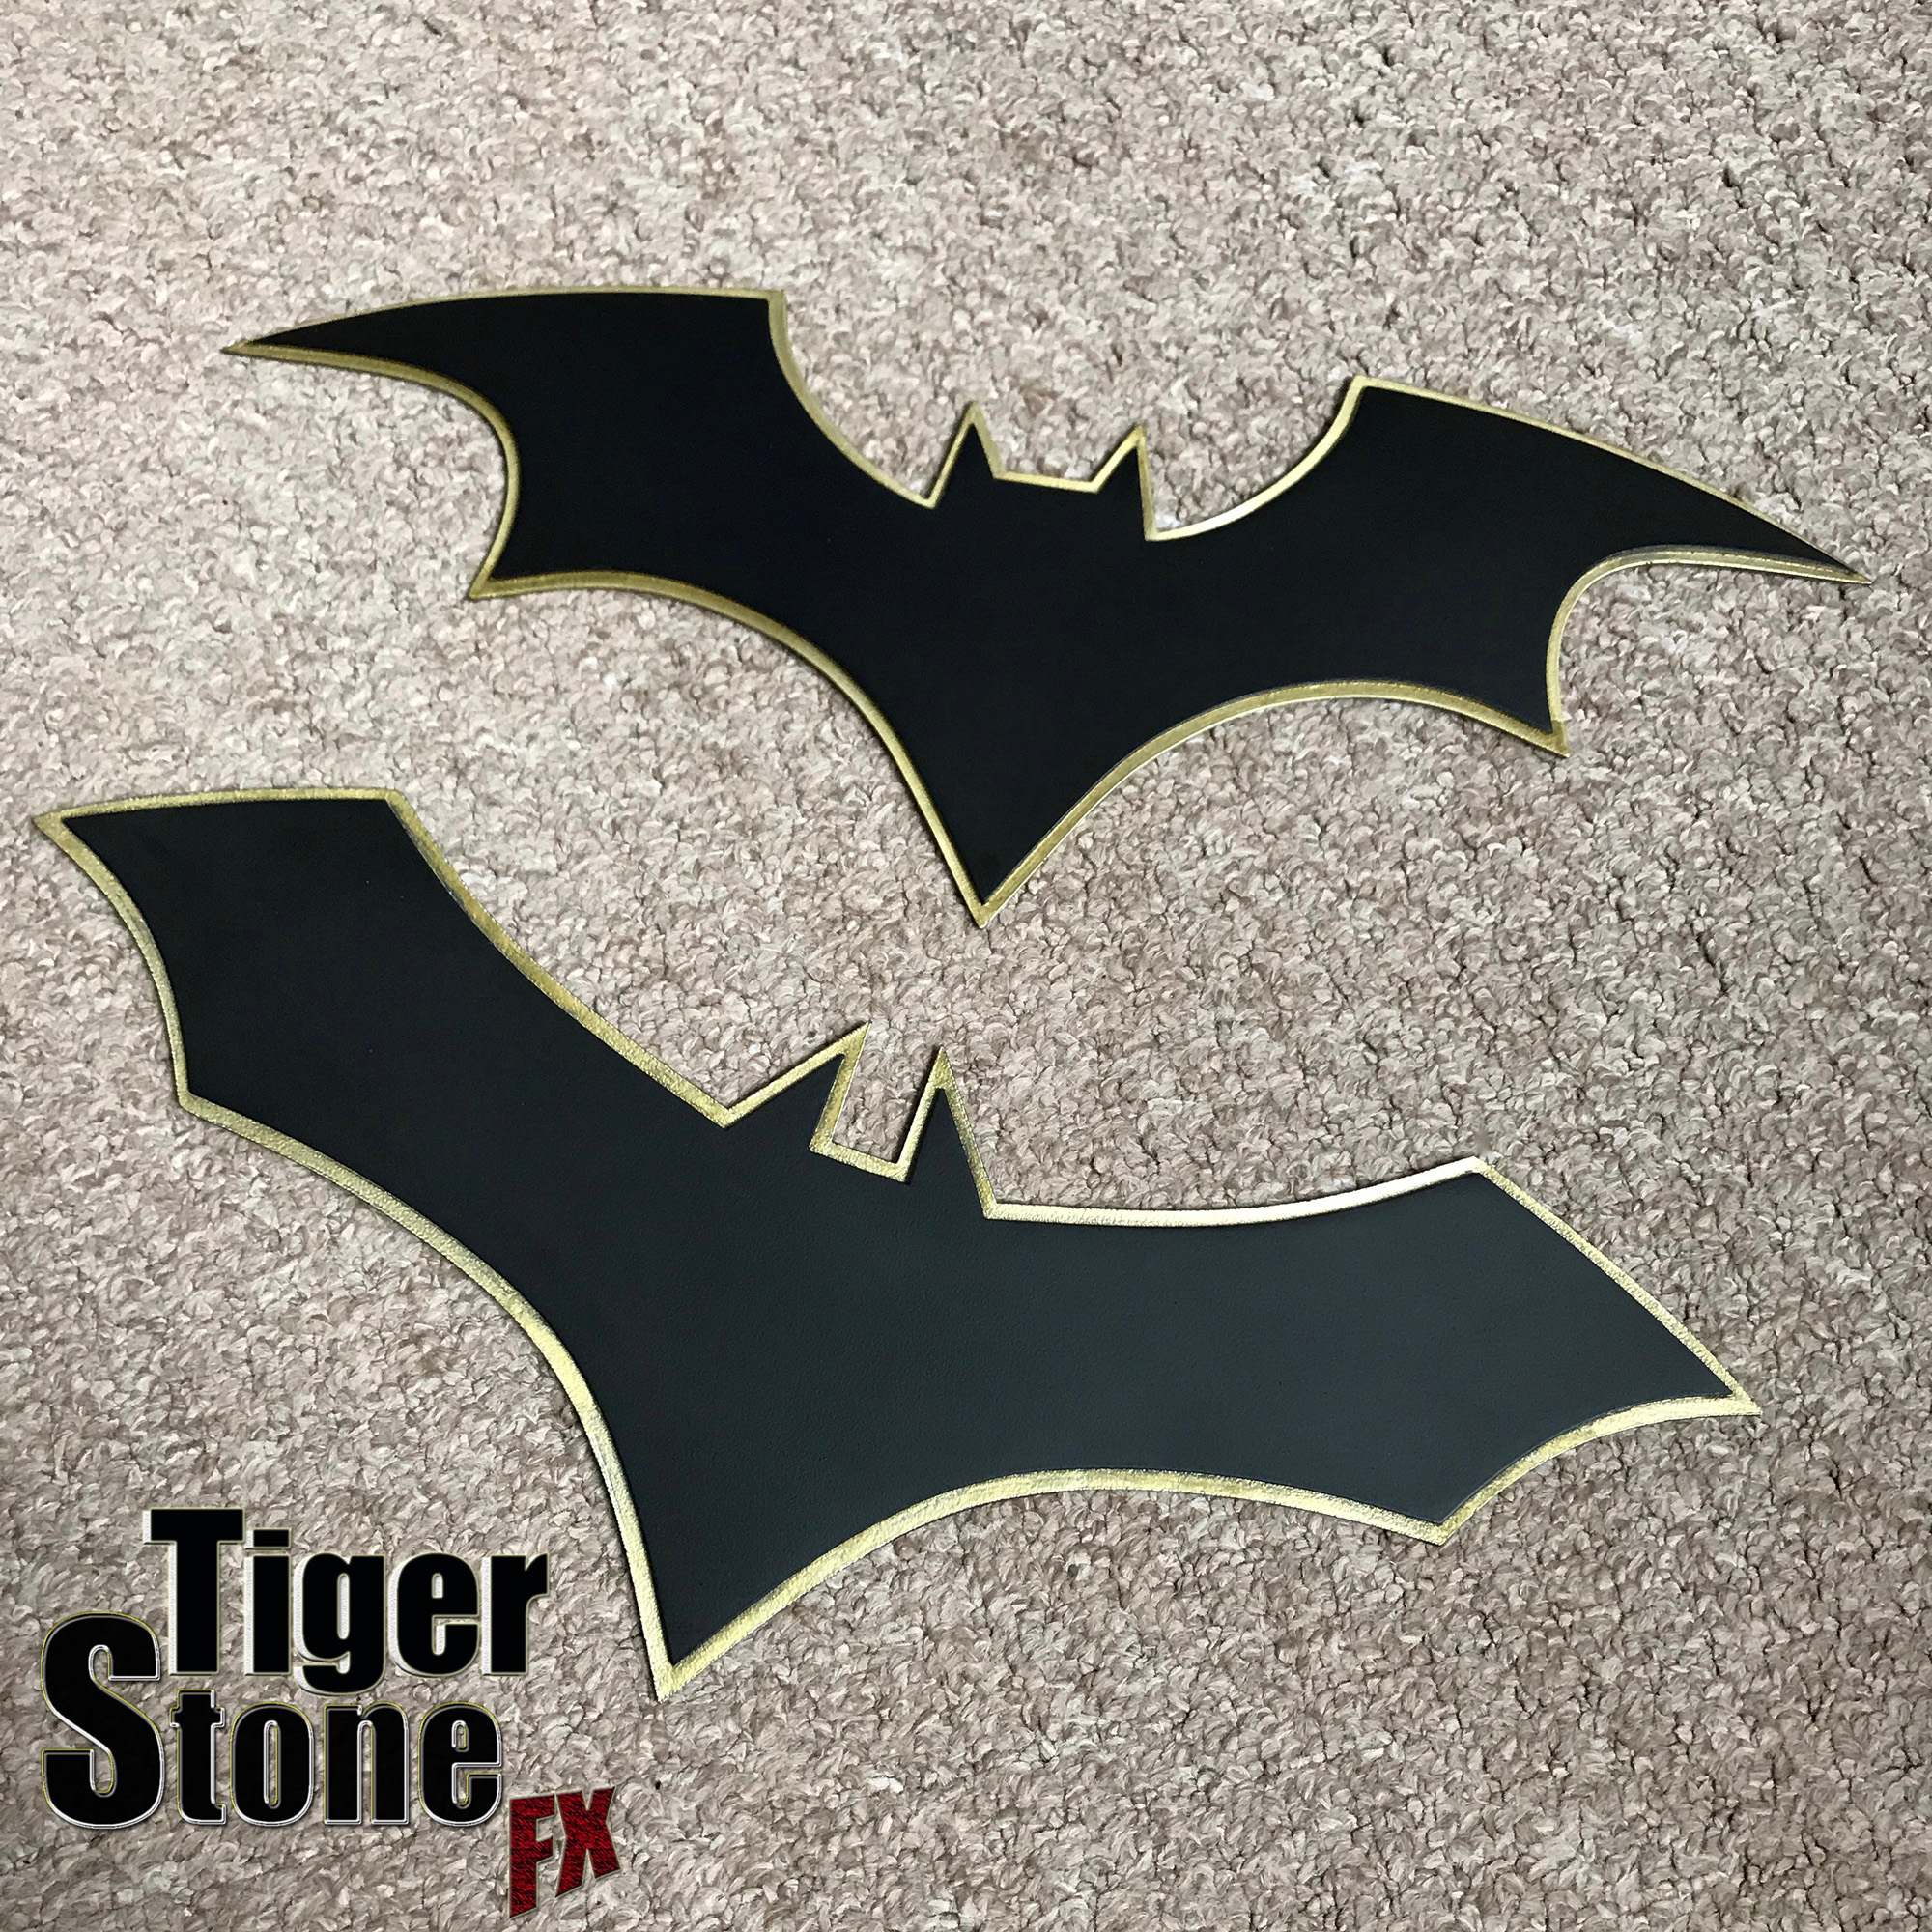 Batman Rebirth Chest Emblems With Gold Border Tiger Stone Fx